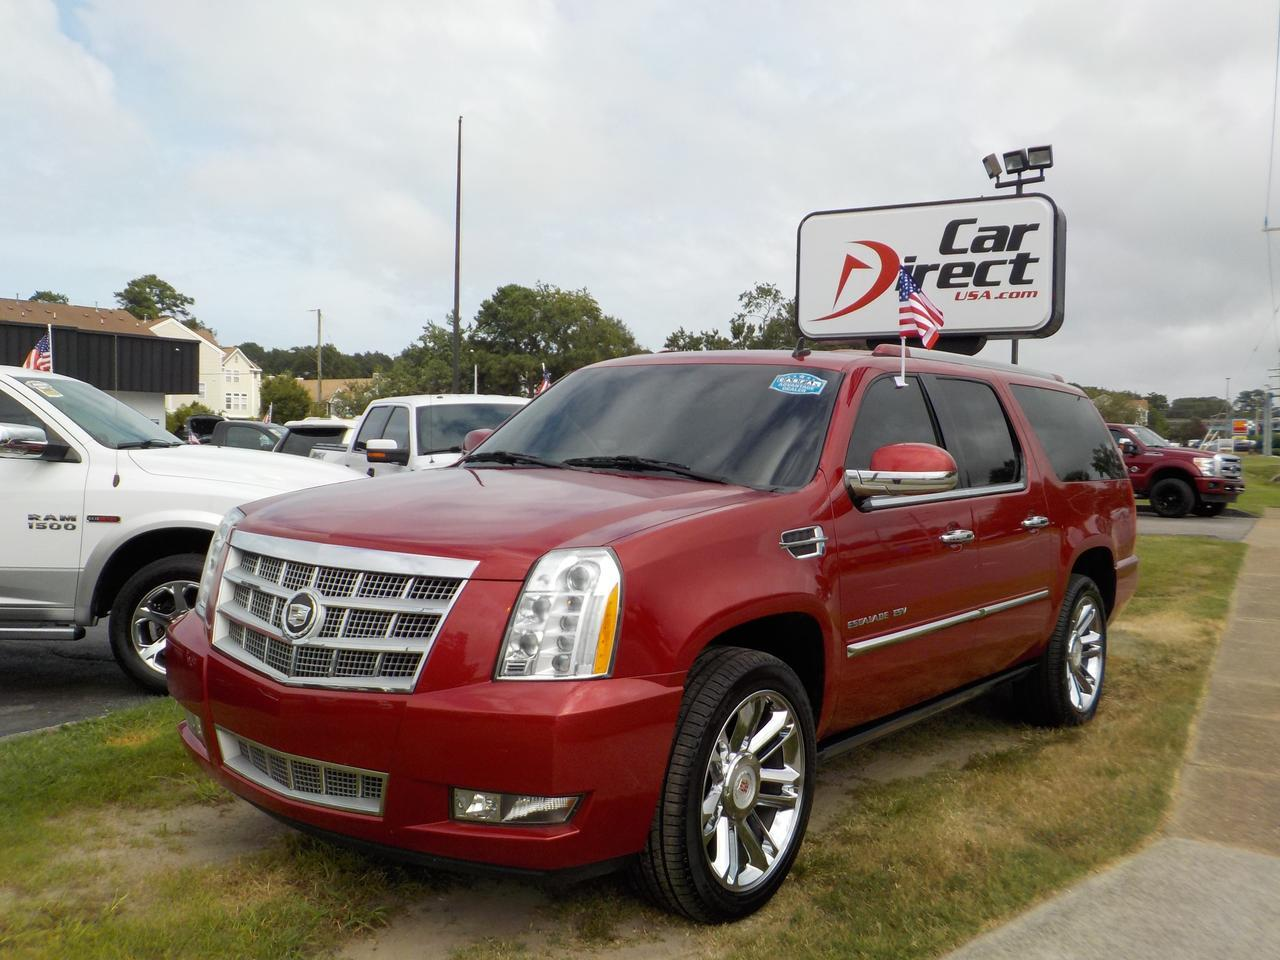 2012 CADILLAC ESCALADE ESV PLATINUM, DVD SYSTEM, SUNROOF, ROOF RACKS, HEATED & COOLED SEATS, BOSE SOUND SYSTEM, WINDOW TINT Virginia Beach VA